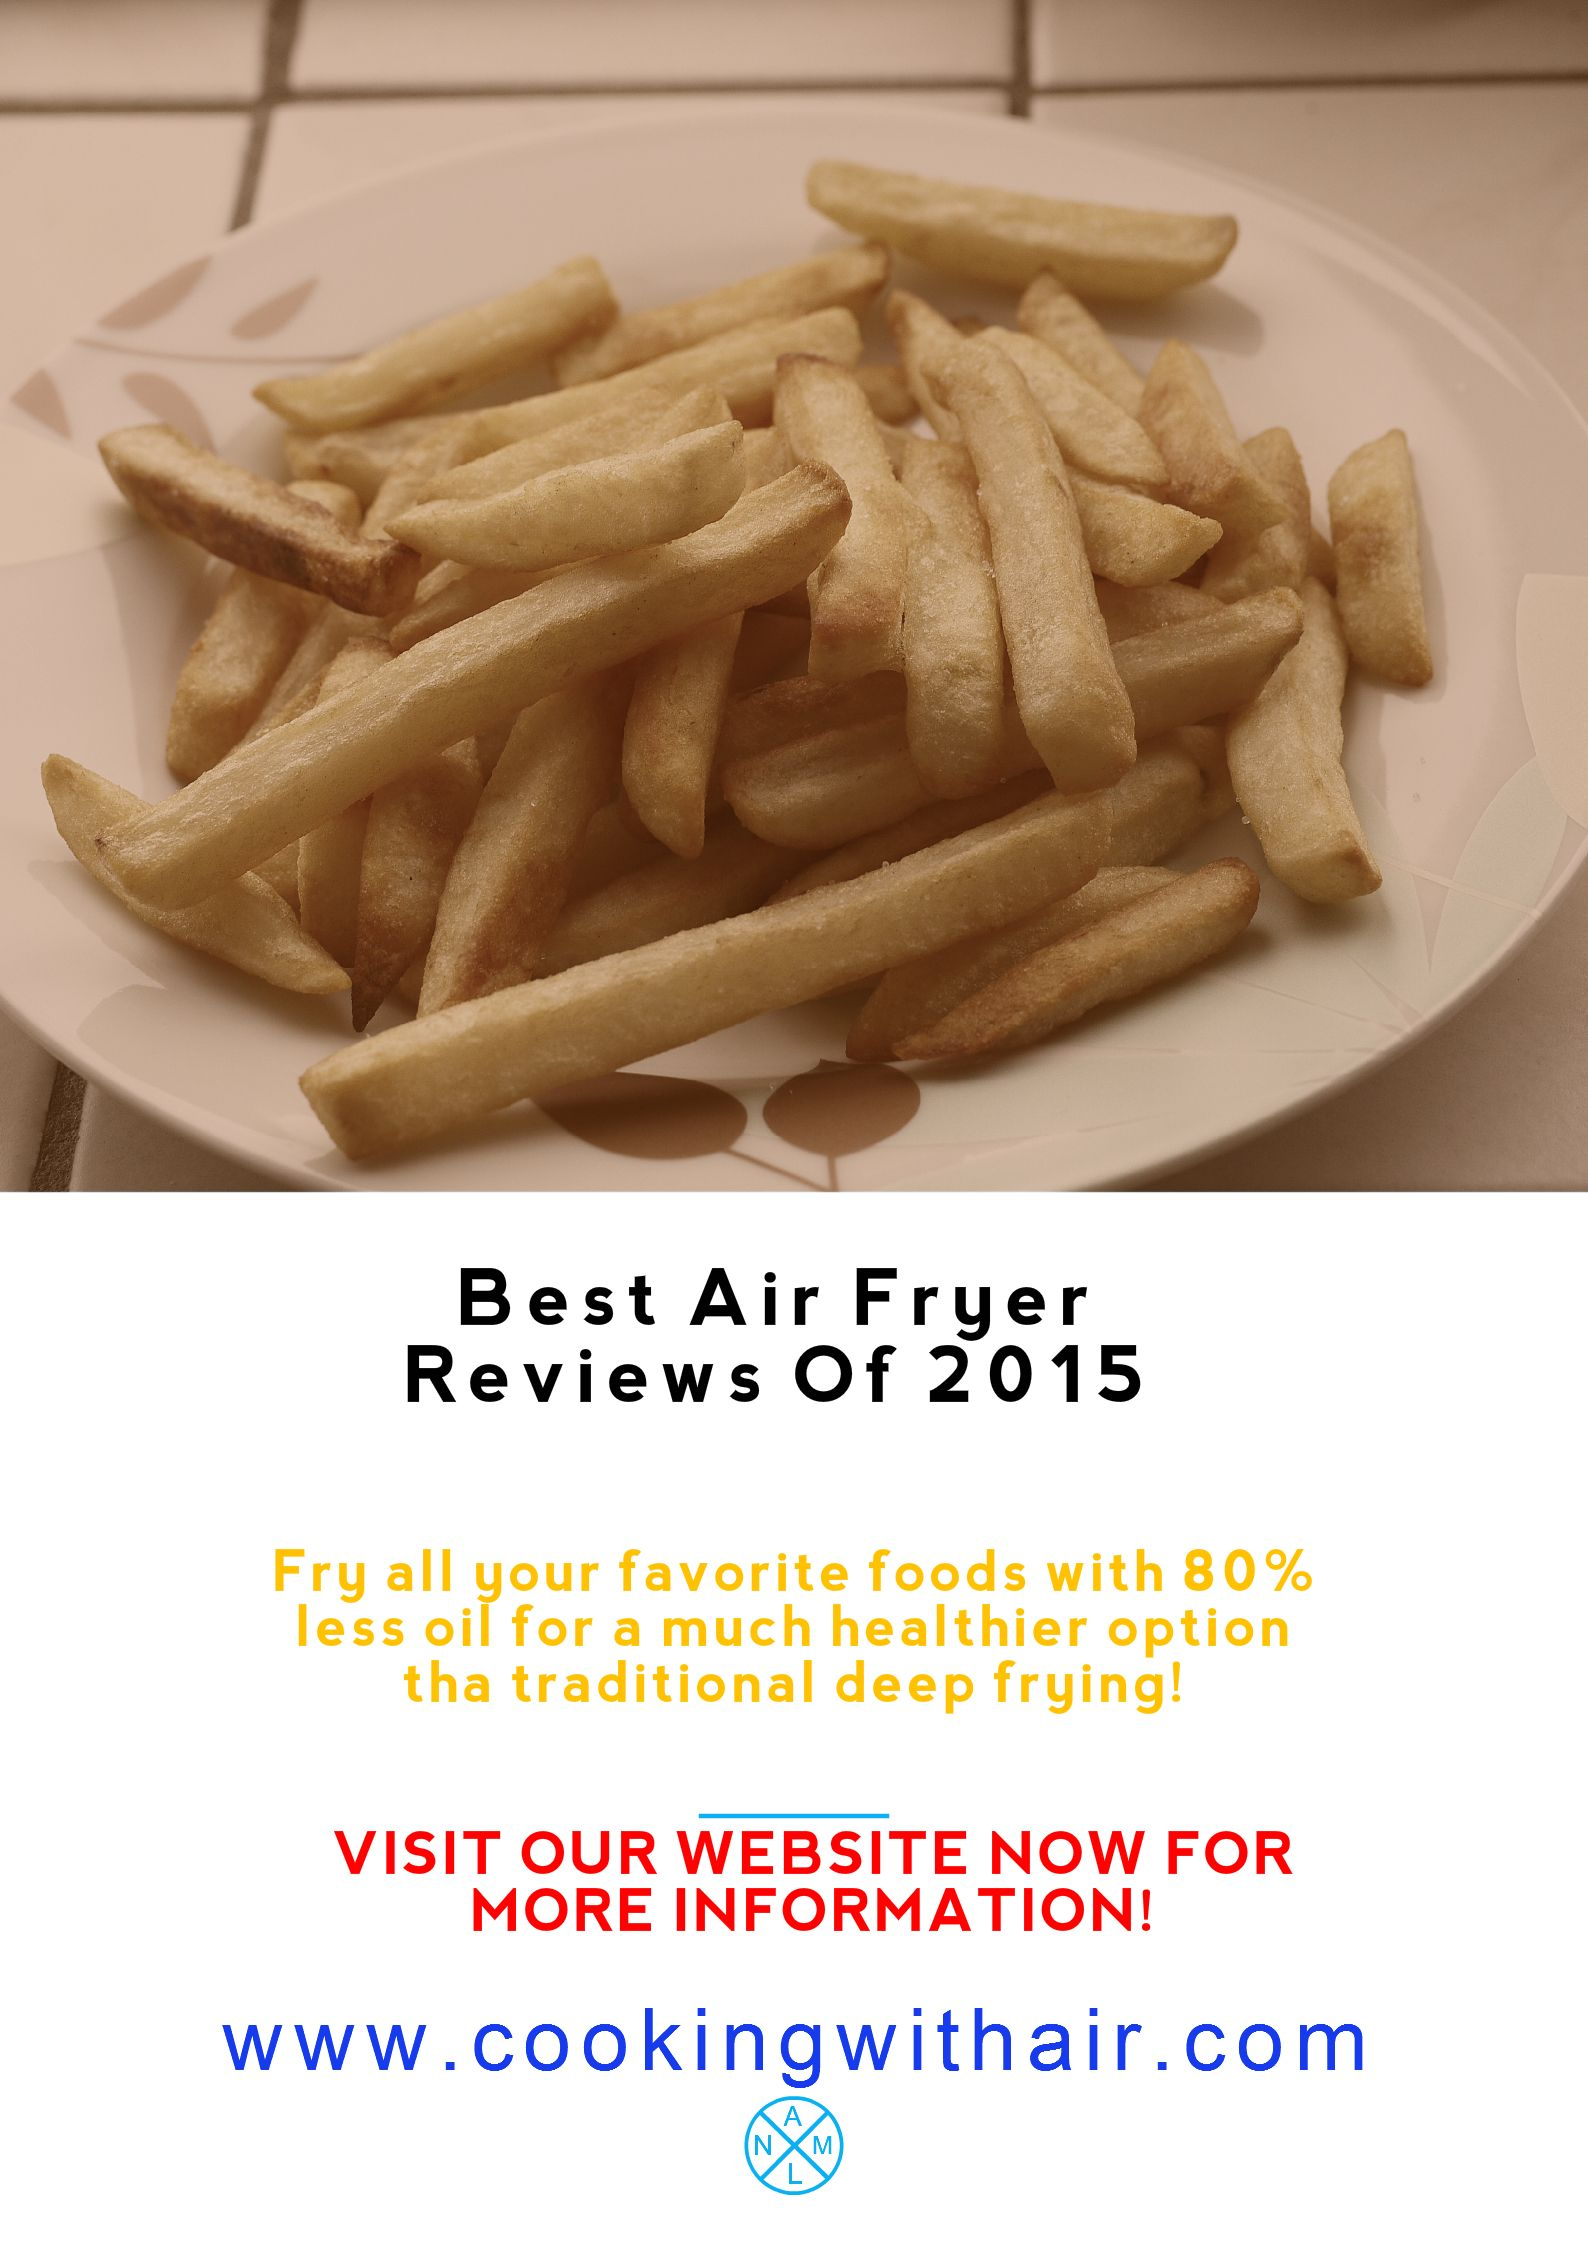 Air Fryer reviews, pros and cons, buying advise and